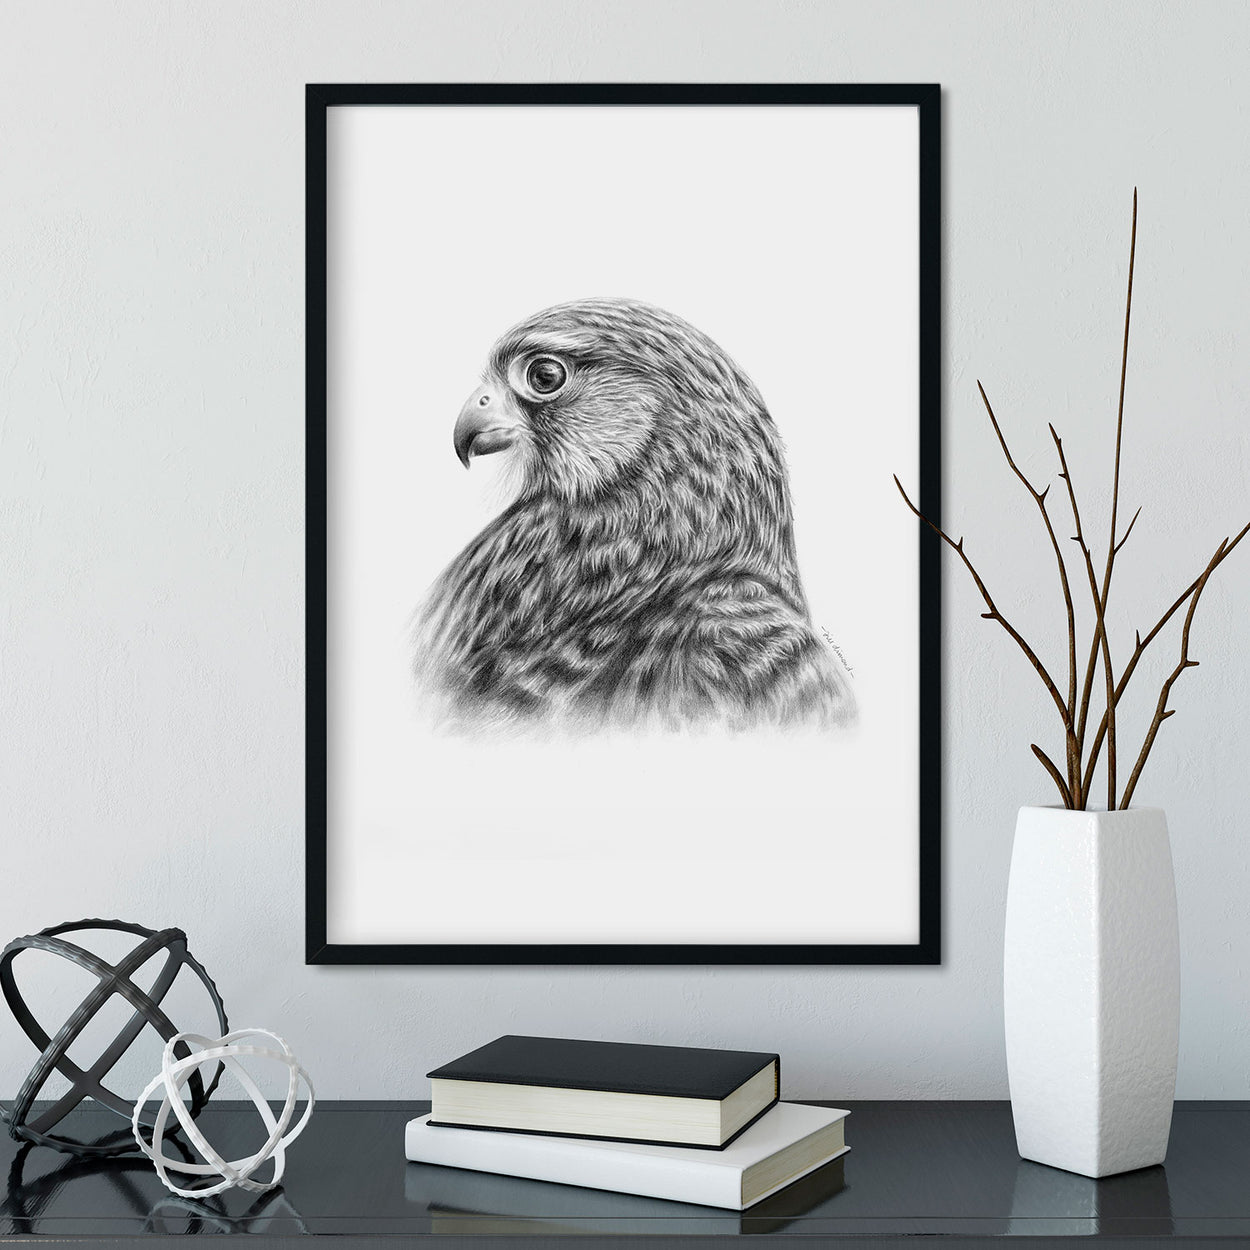 Kestrel Bird of Prey Wall Art in Frame - The Thriving Wild - Jill Dimond